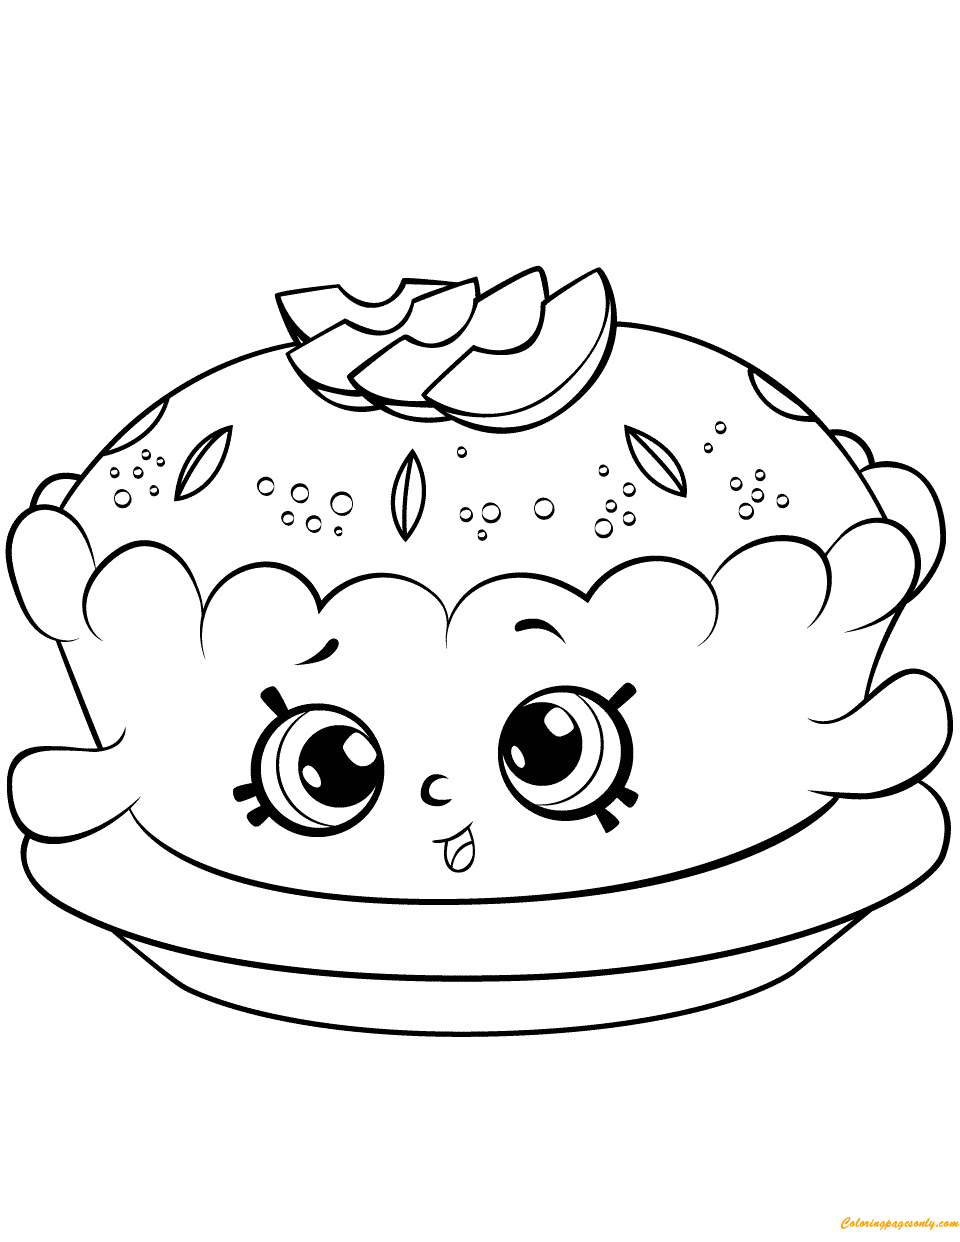 Apple Pie Alice Shopkin Season 6 Coloring Page Free